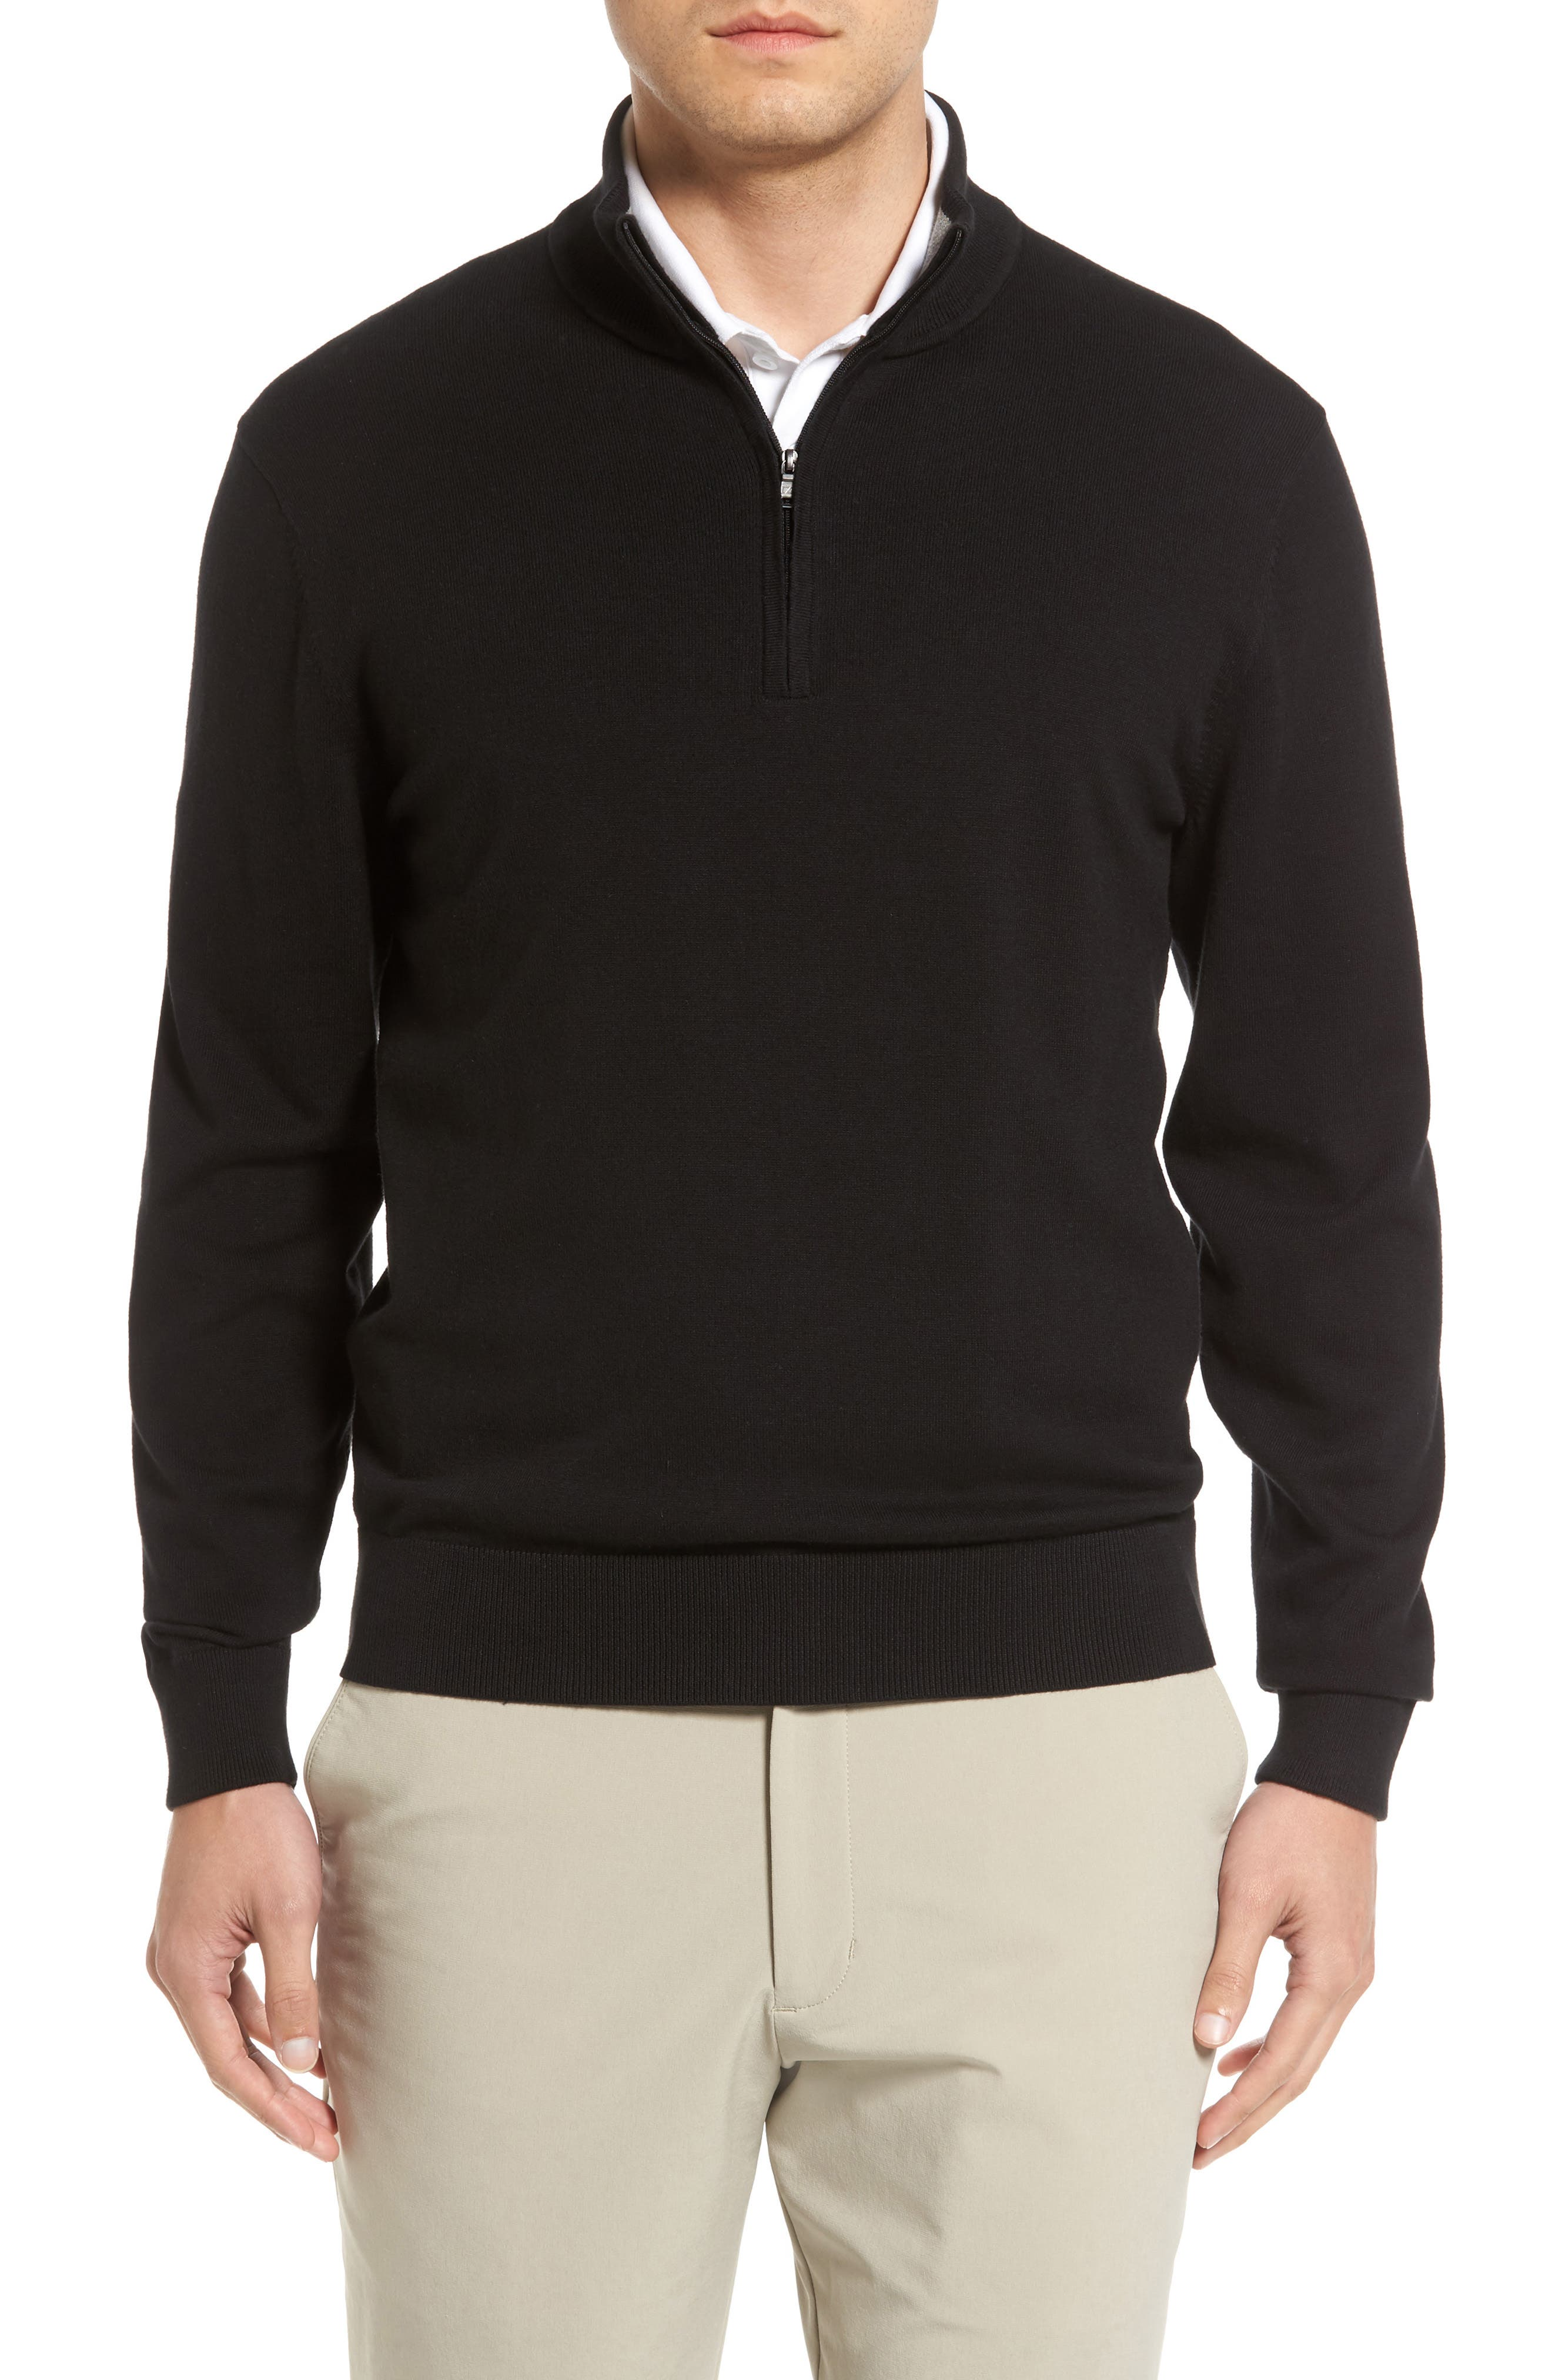 CUTTER & BUCK,                             Lakemont Half Zip Sweater,                             Main thumbnail 1, color,                             BLACK